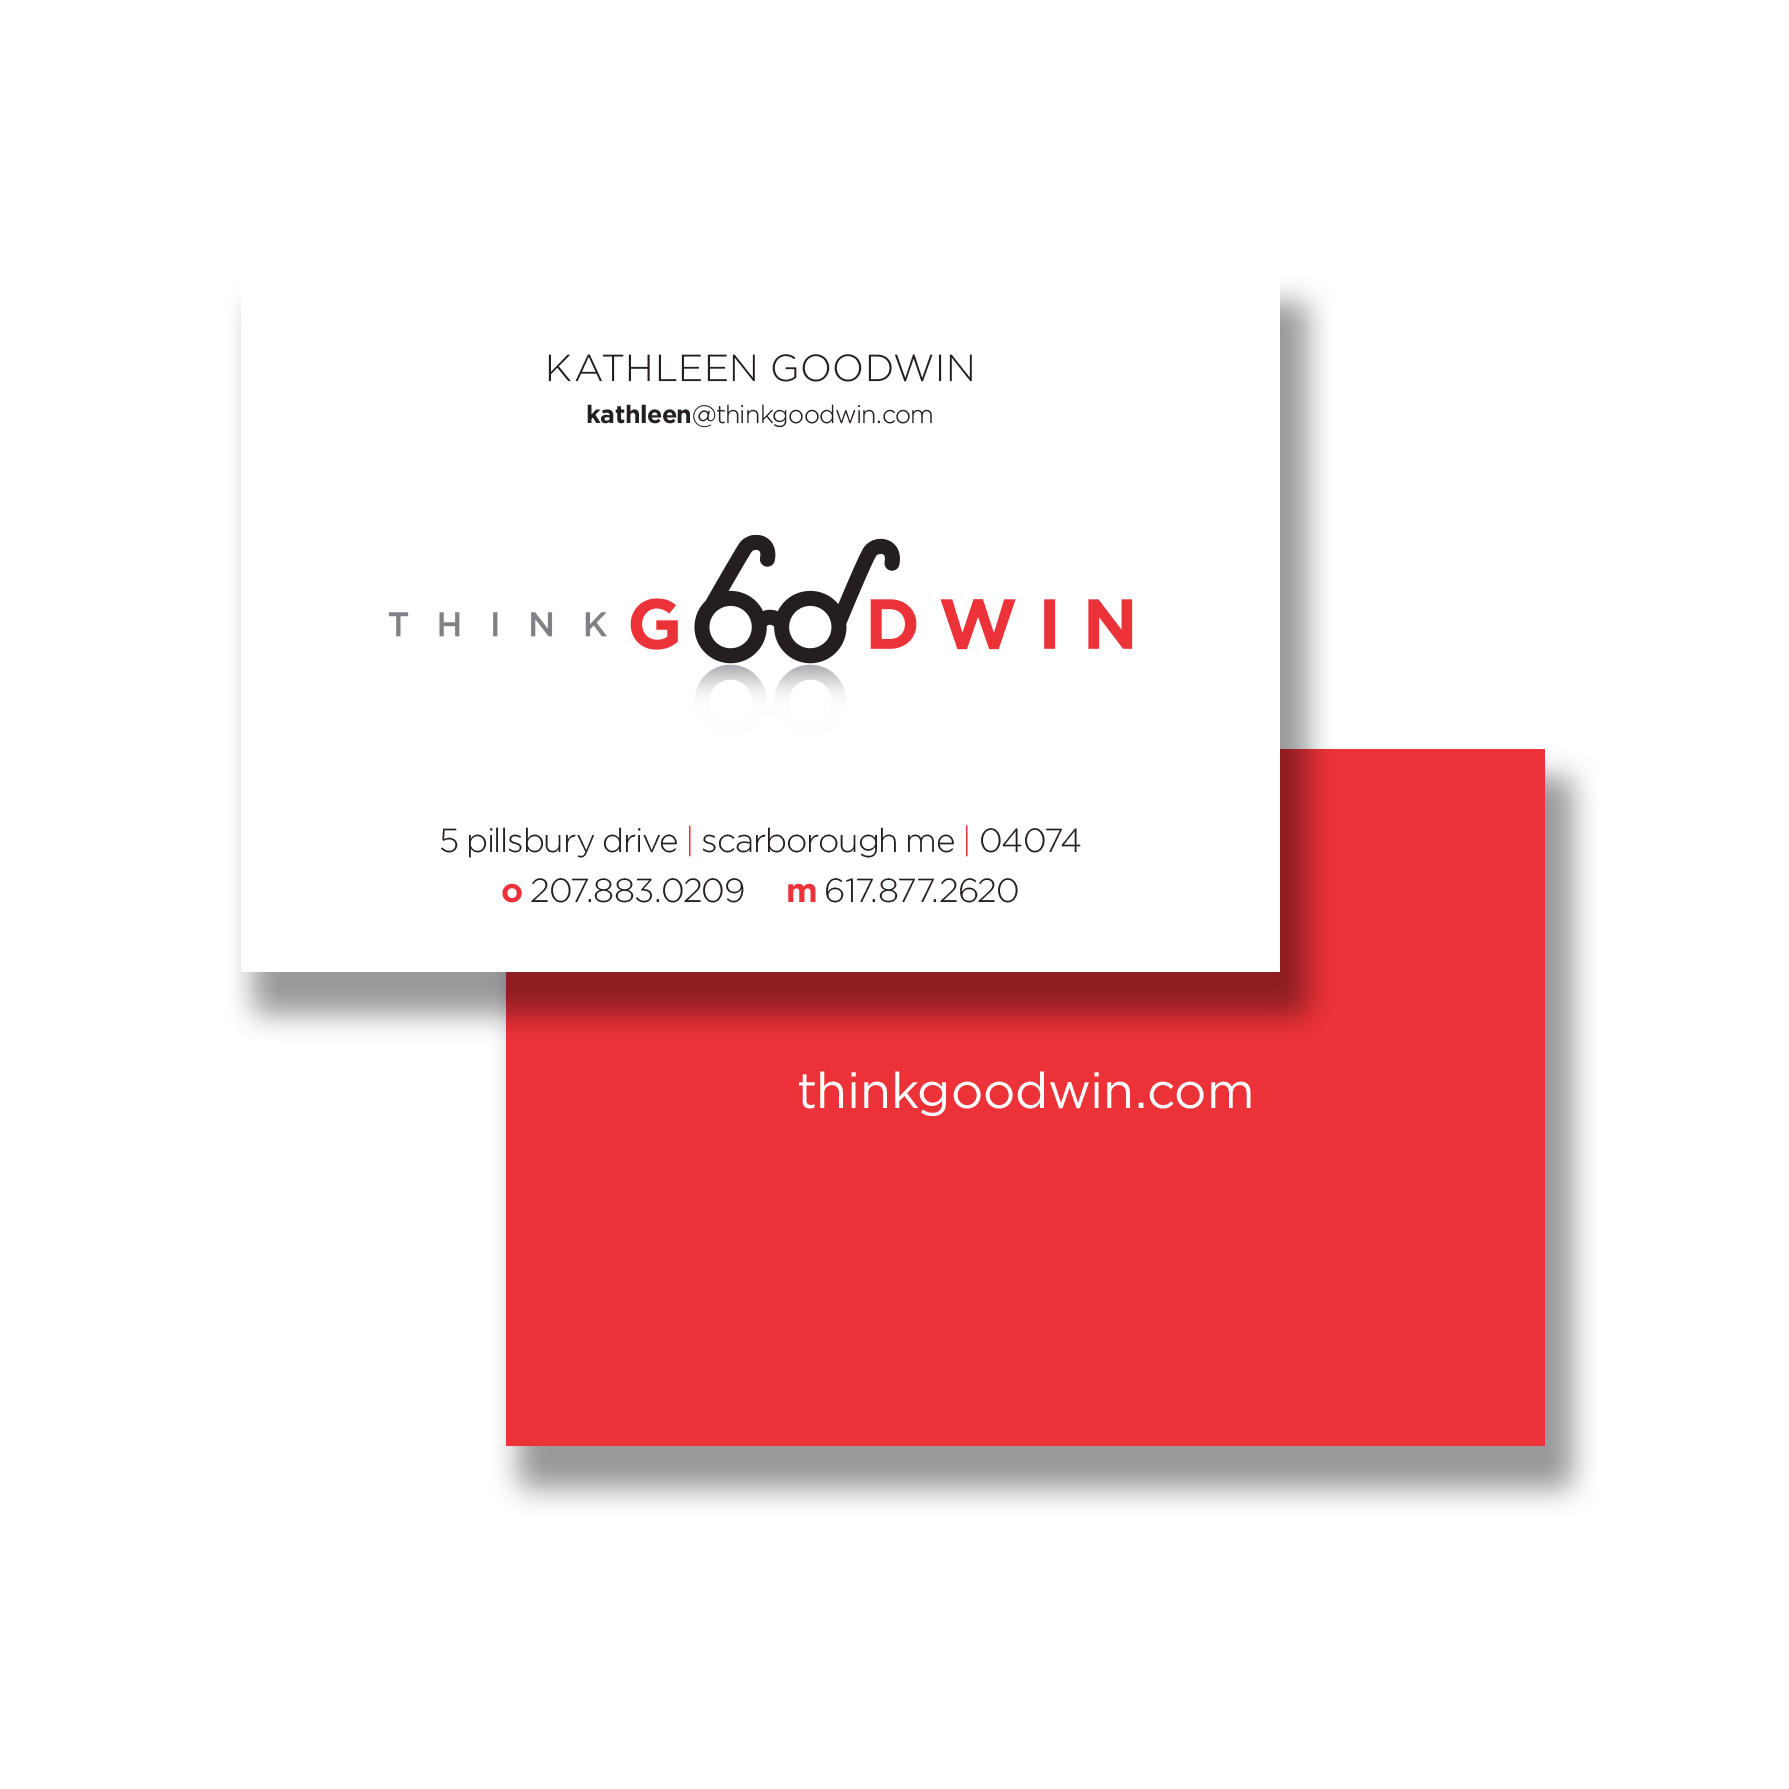 corporate identity + business card design for marketing strategist,  Kathleen Goodwin